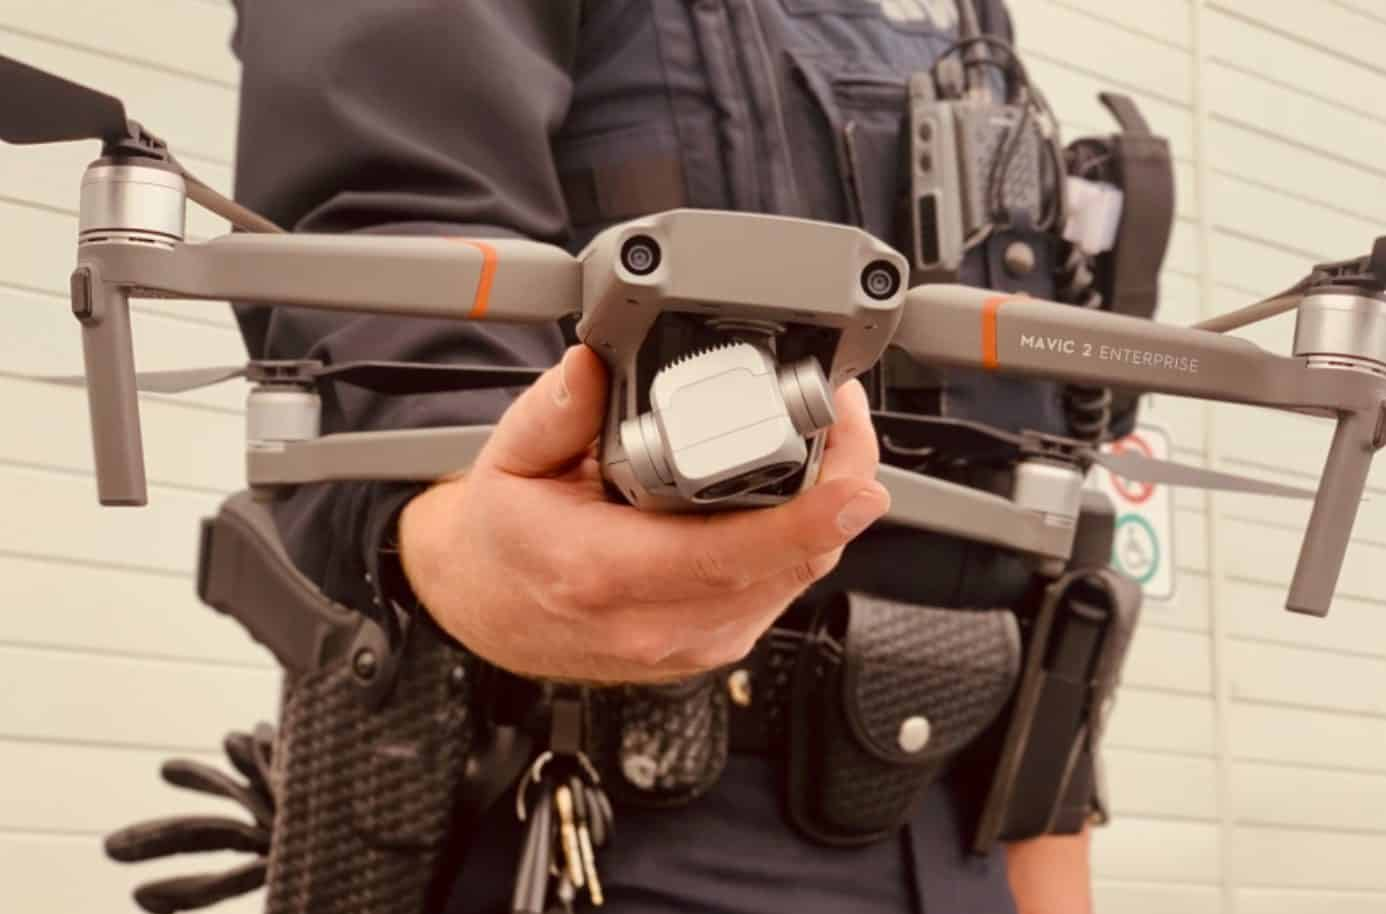 Canadian police find missing Lethbridge man with a DJI Mavic 2 Enterprise drone